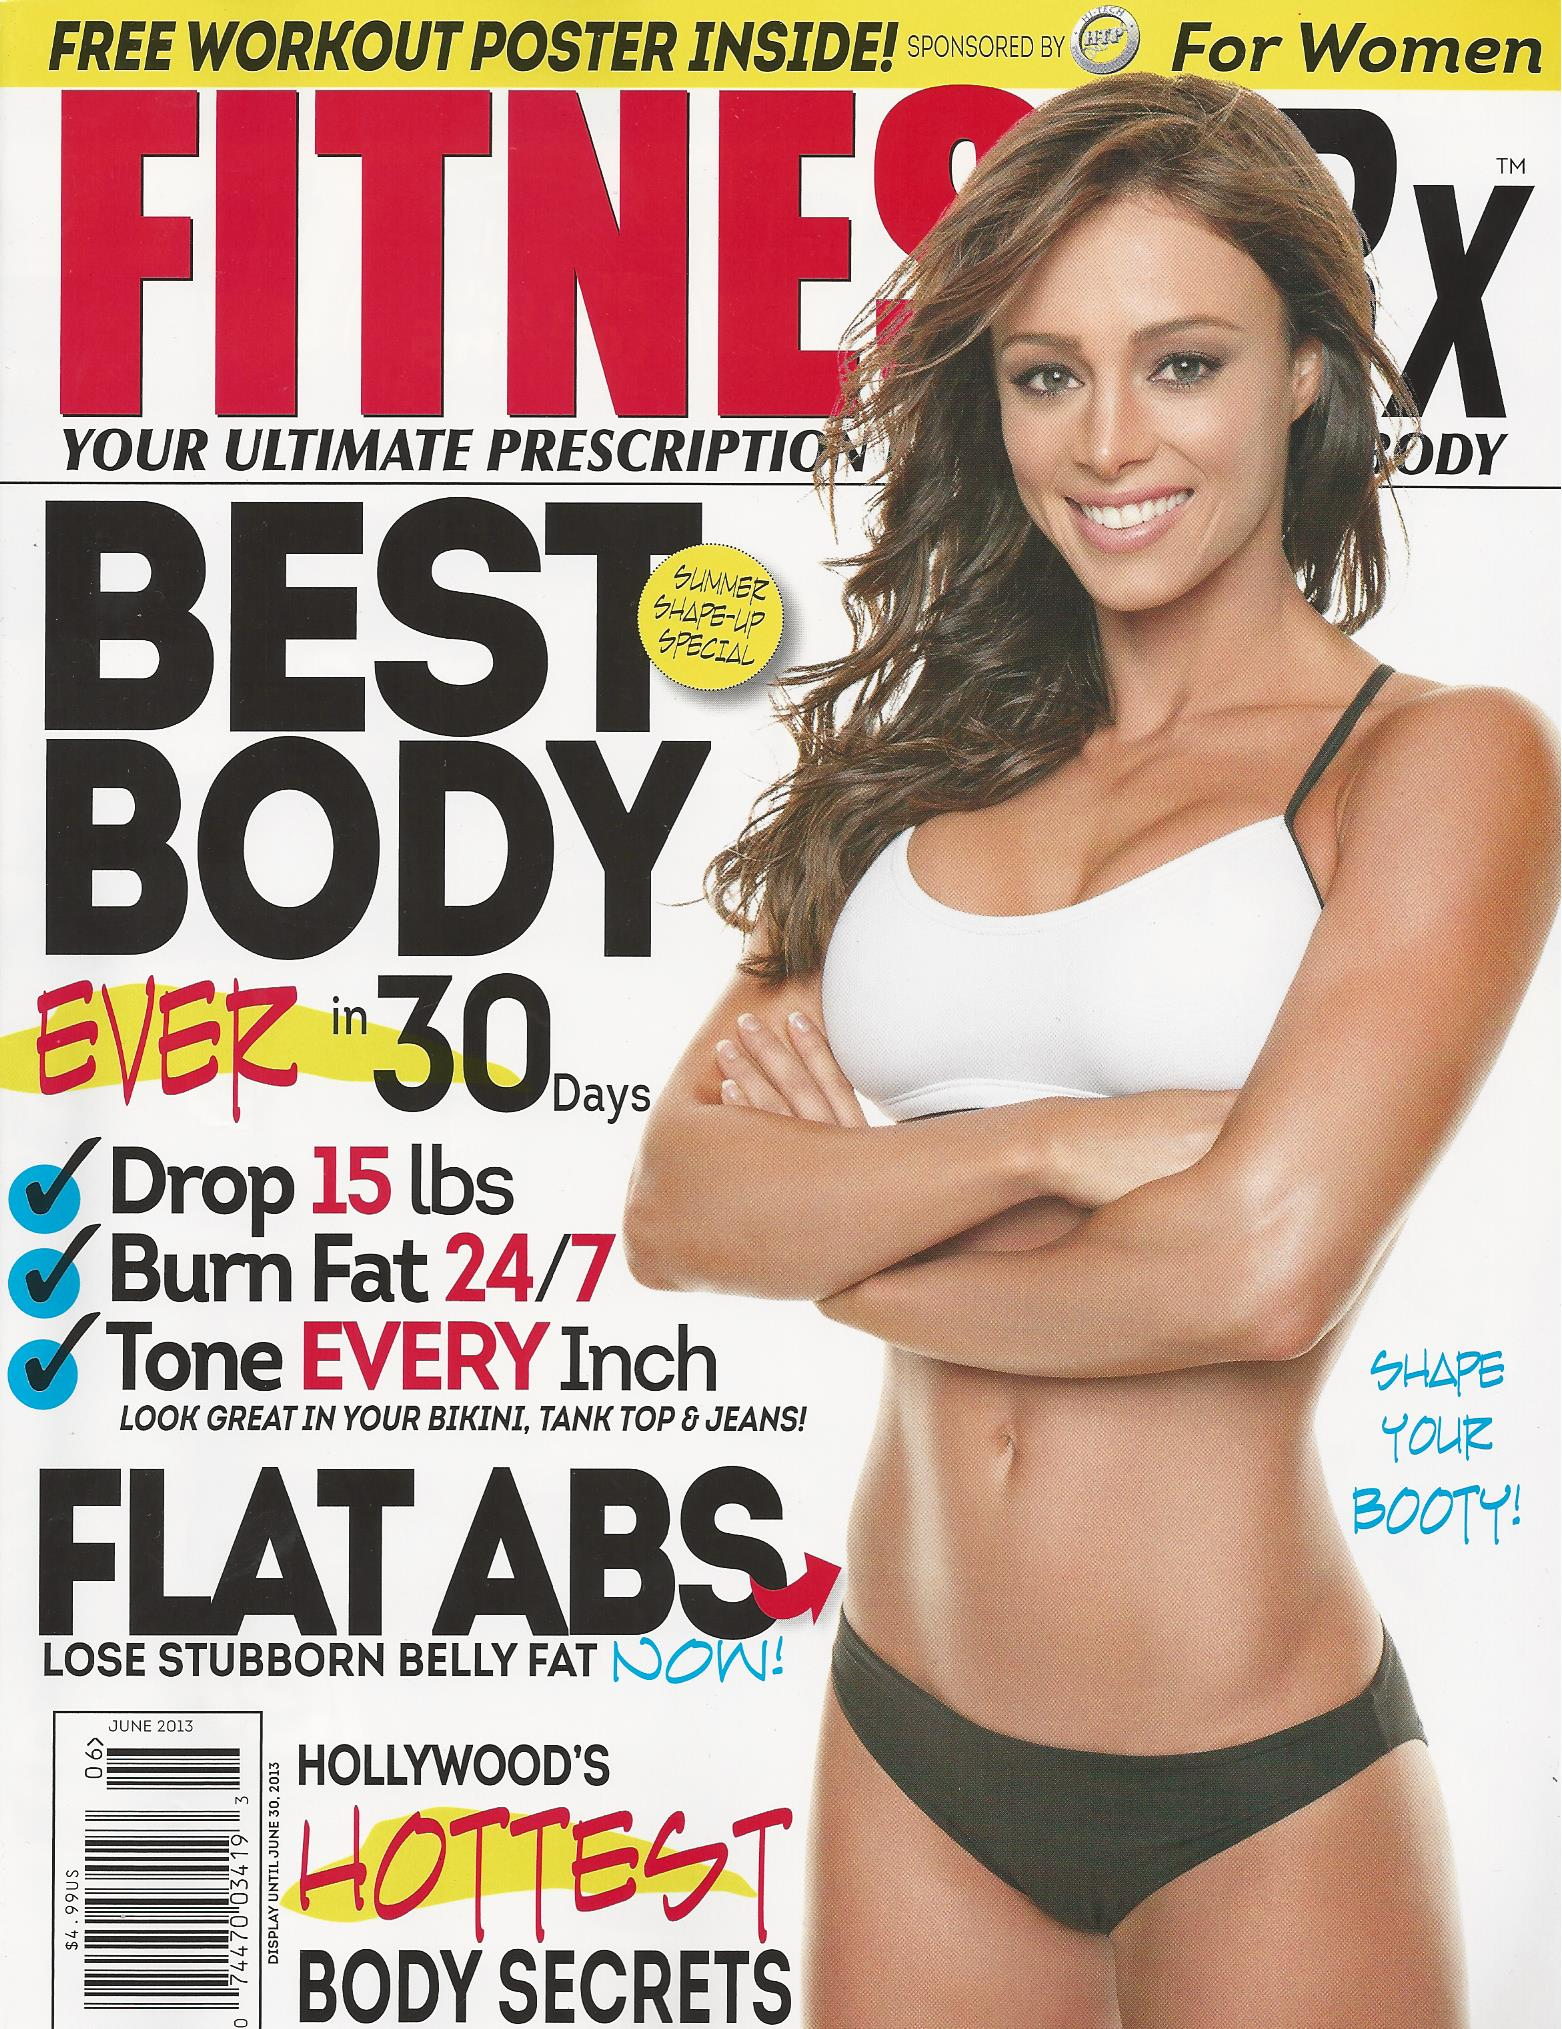 Fitness Rx For Women 001